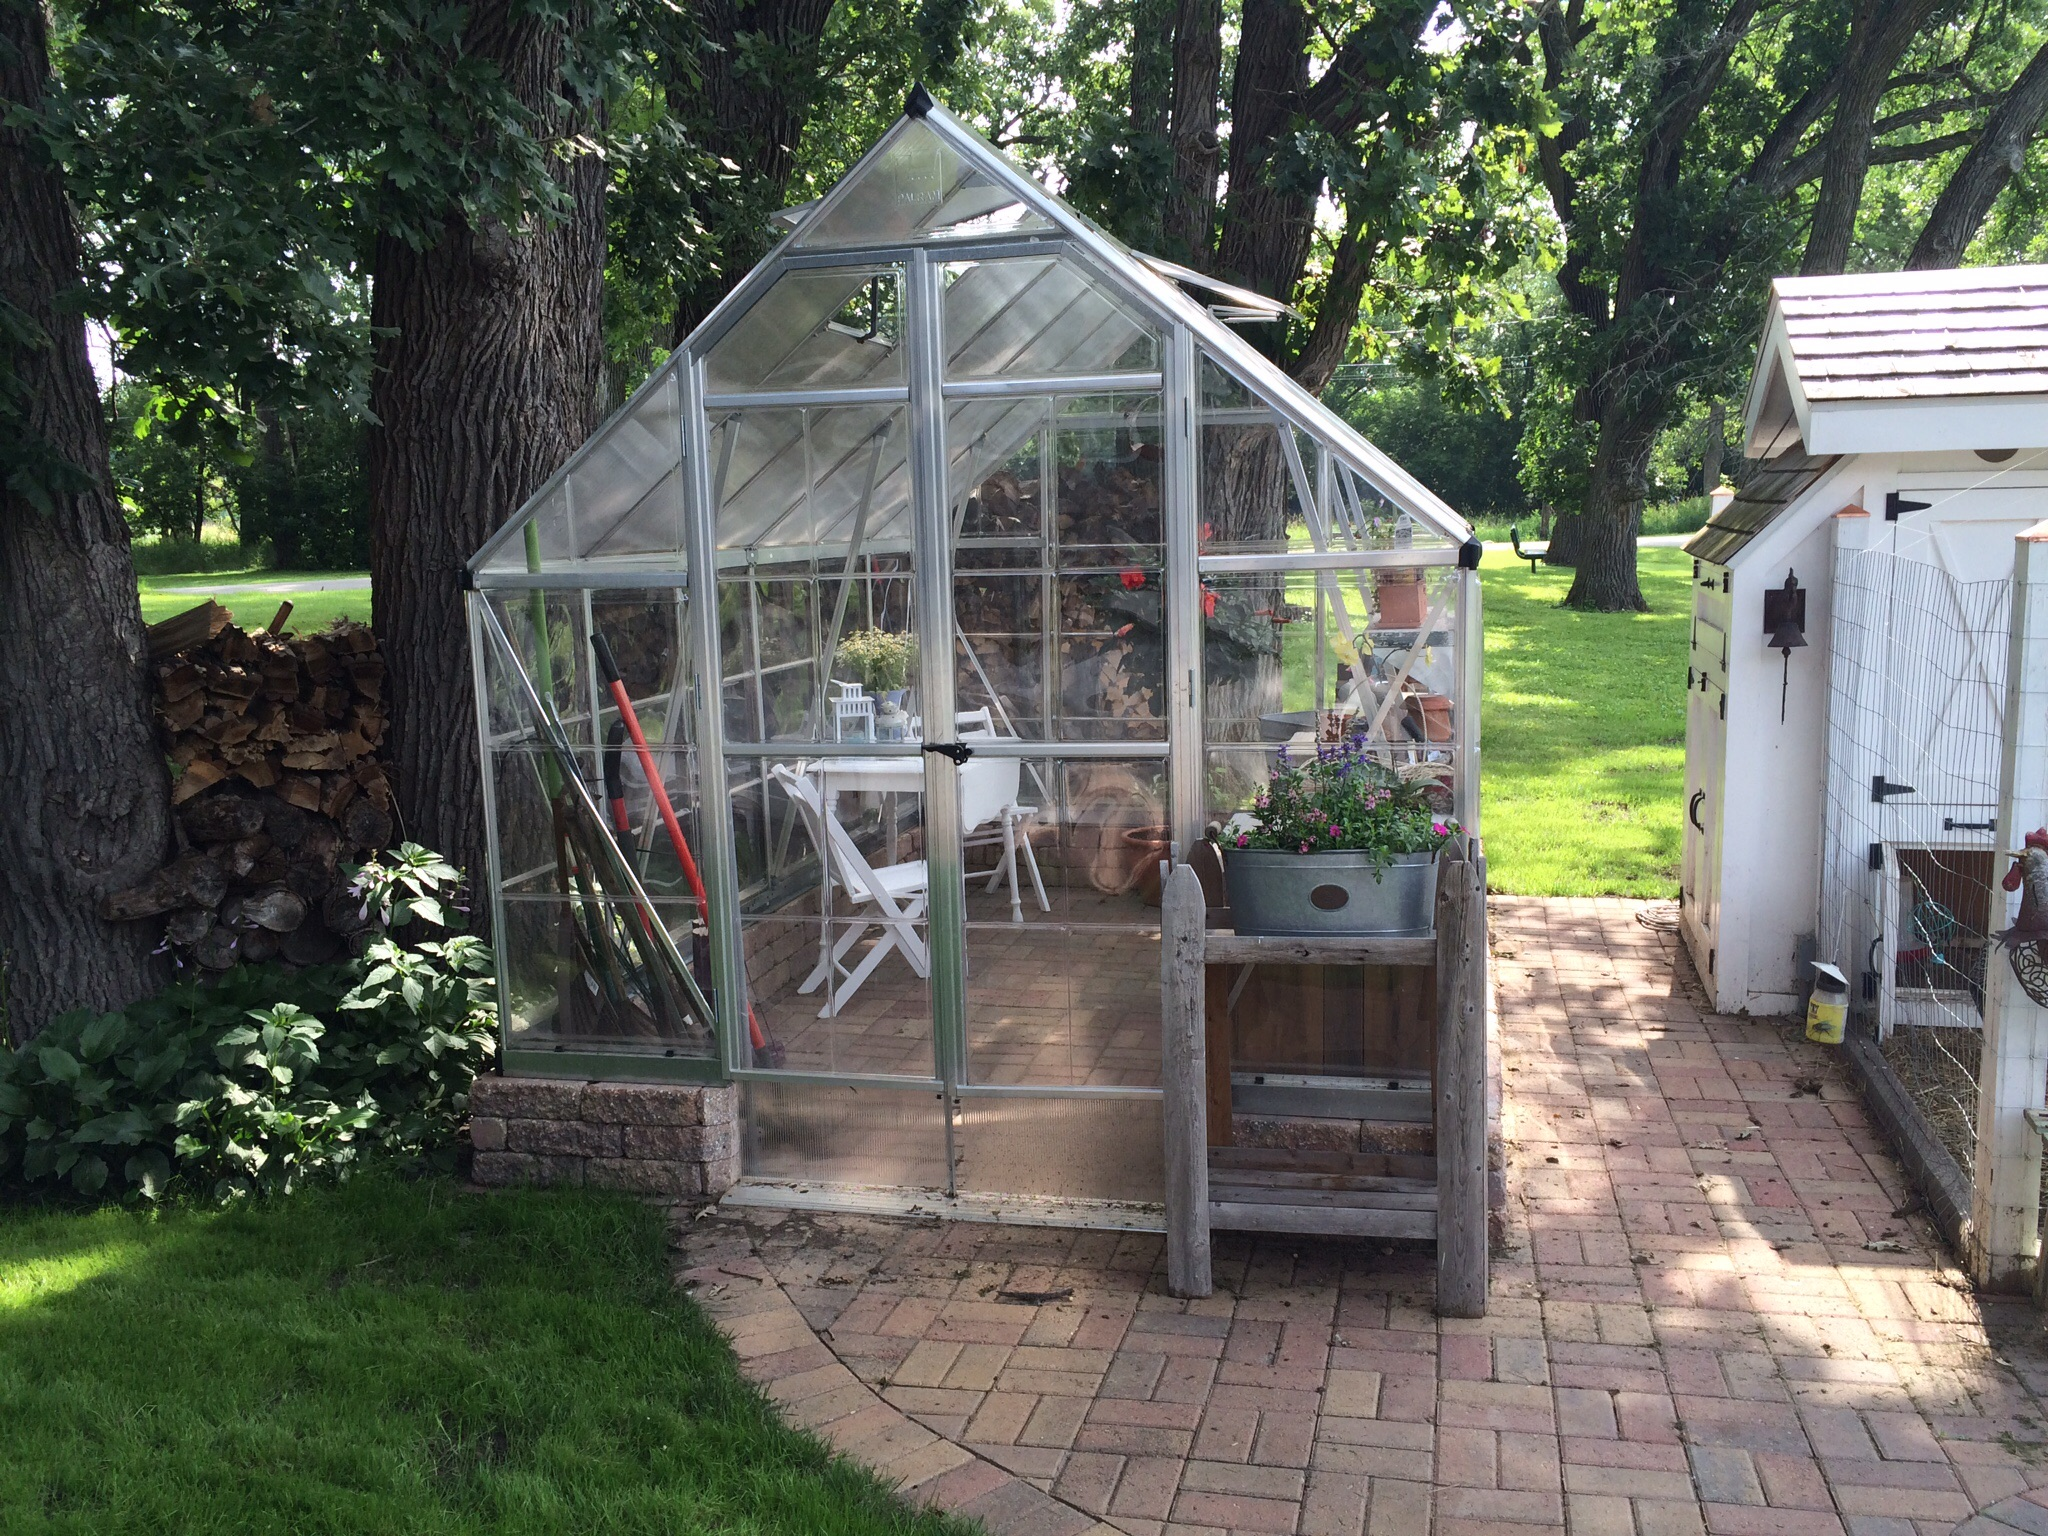 Every Garden Needs a Greenhouse